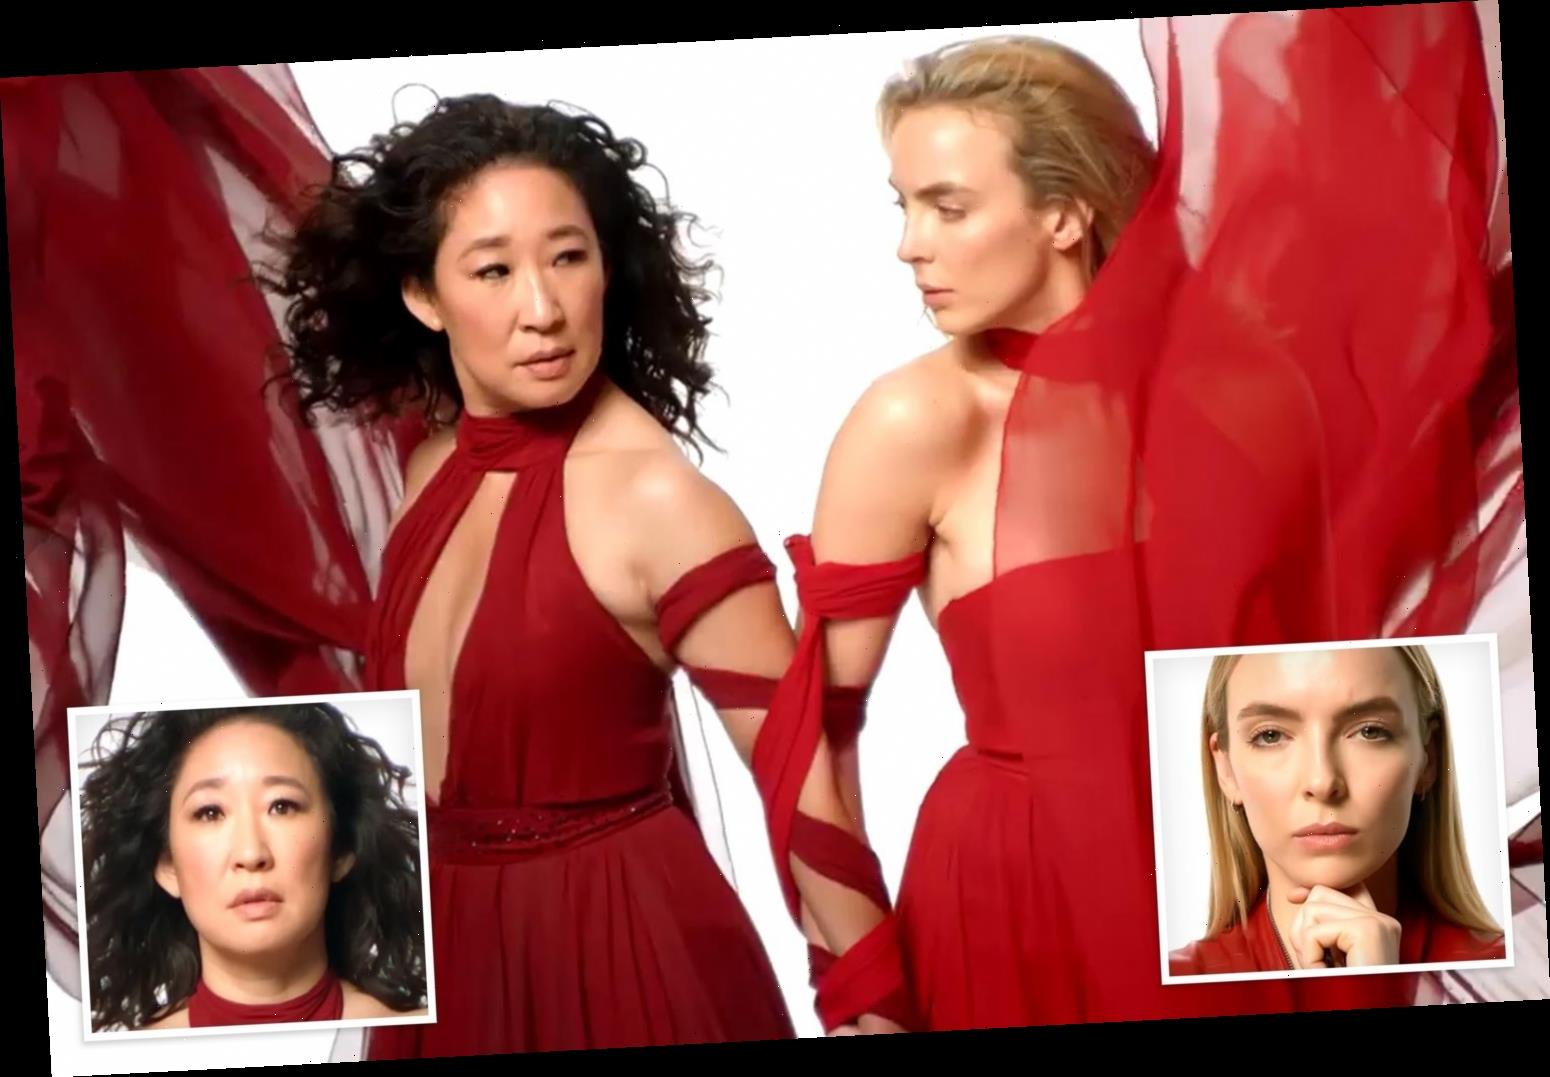 Killing Eve's Jodie Comer and Sandra Oh stun in red gowns in sexy new teaser as series three release date is confirmed